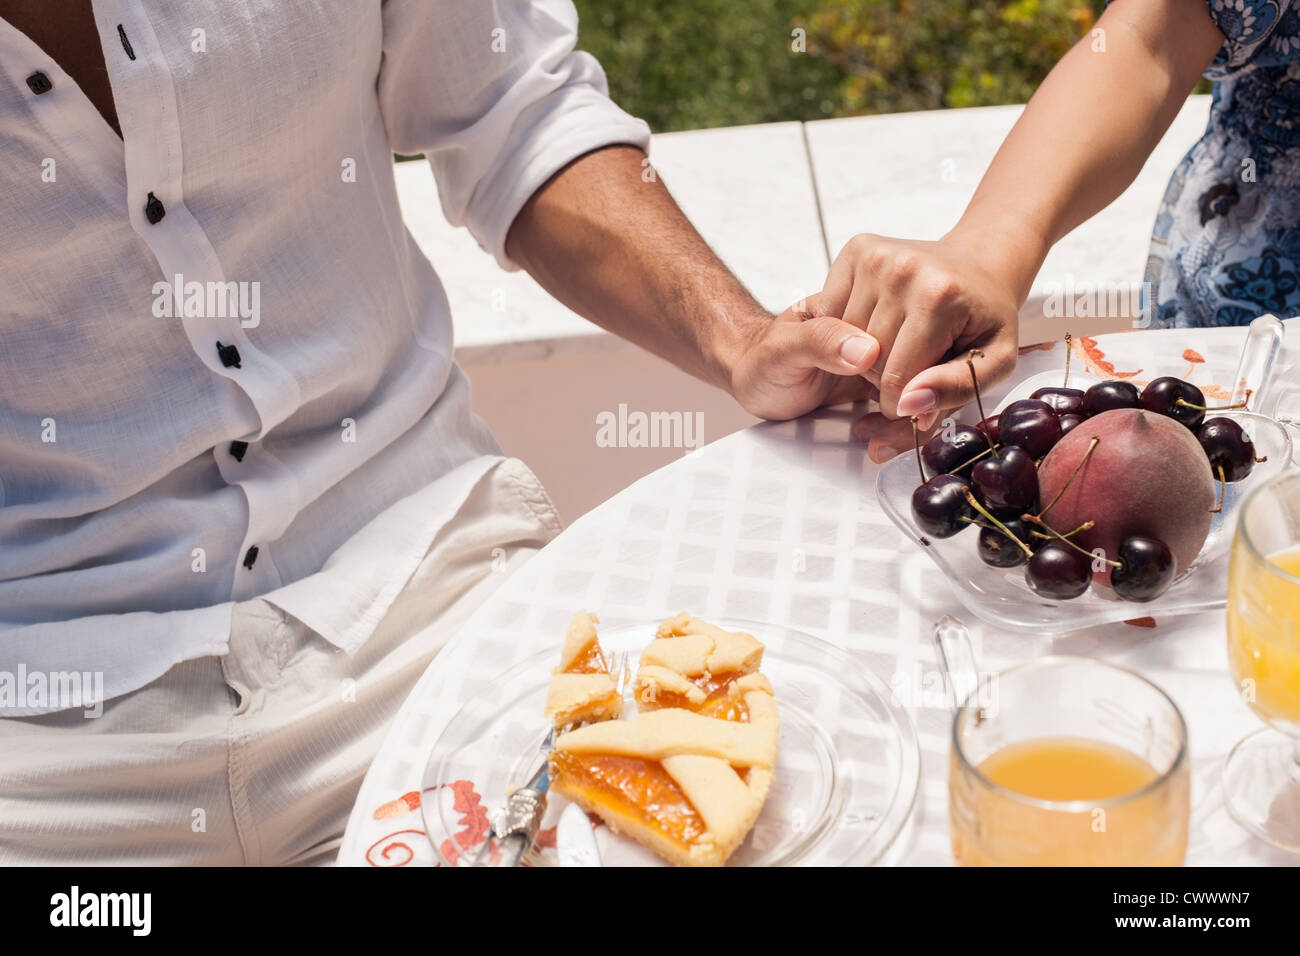 Couple holding hands at table - Stock Image